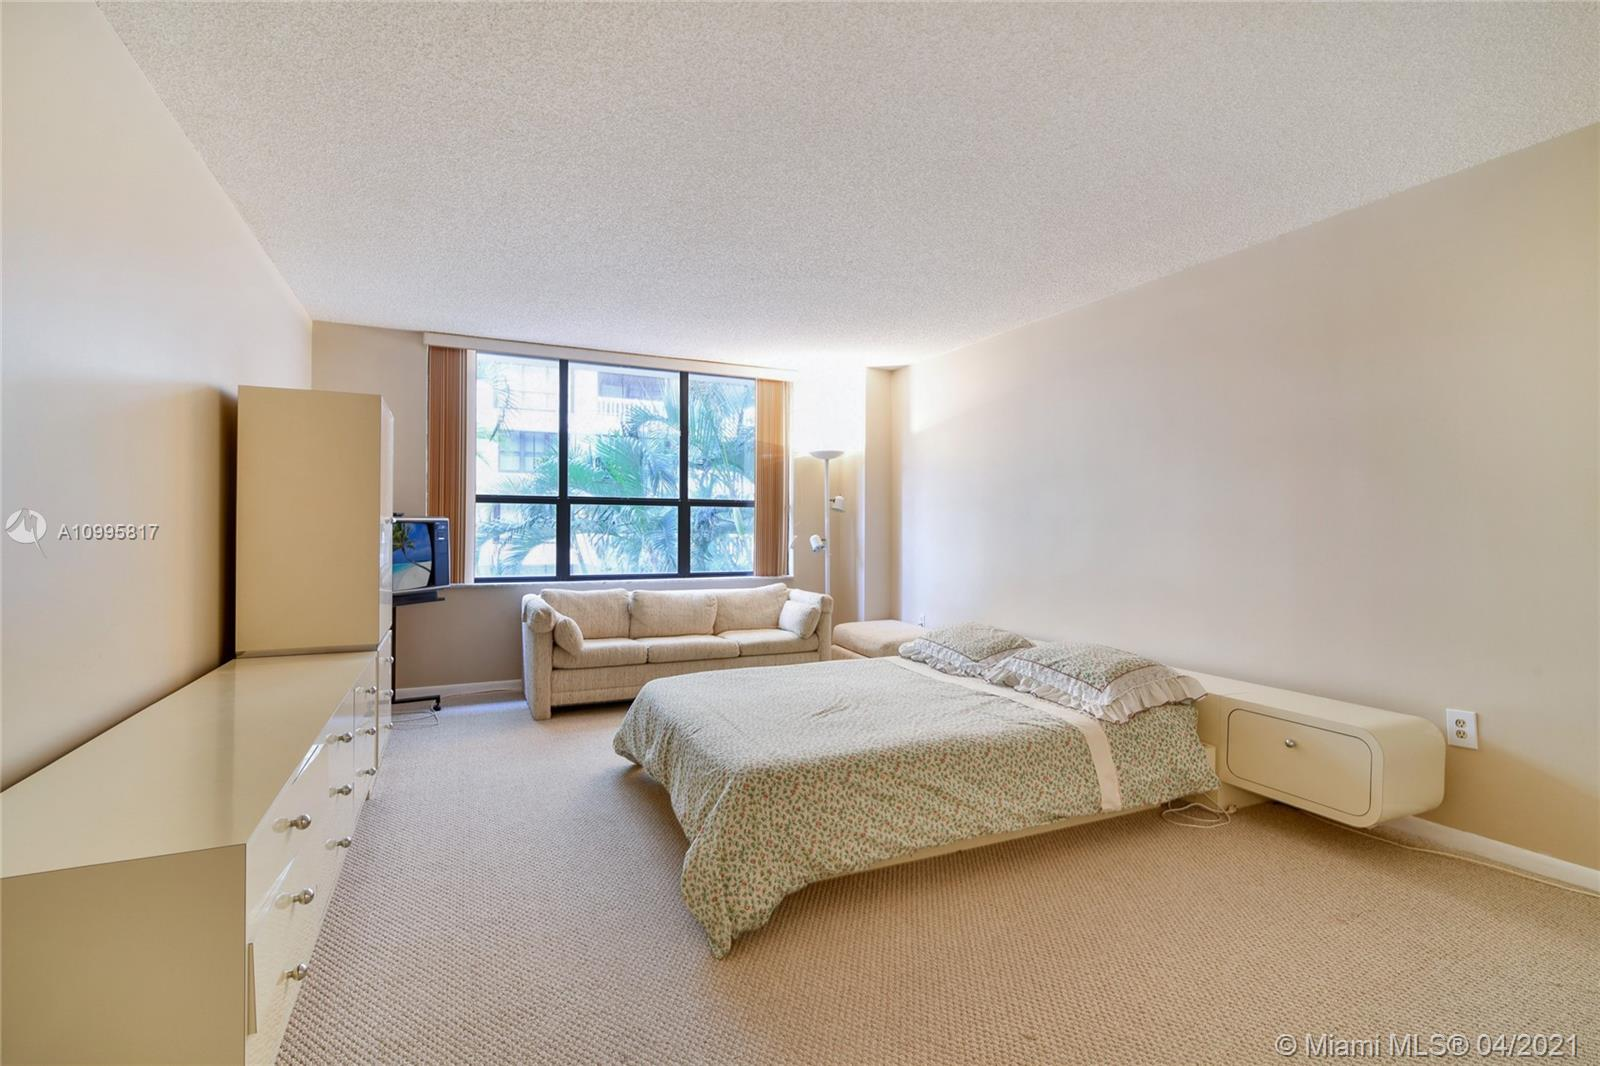 Photo of 9801 Collins Ave #5H, Bal Harbour, Florida, 33154 - Dinning room (where can be a third bedroom)